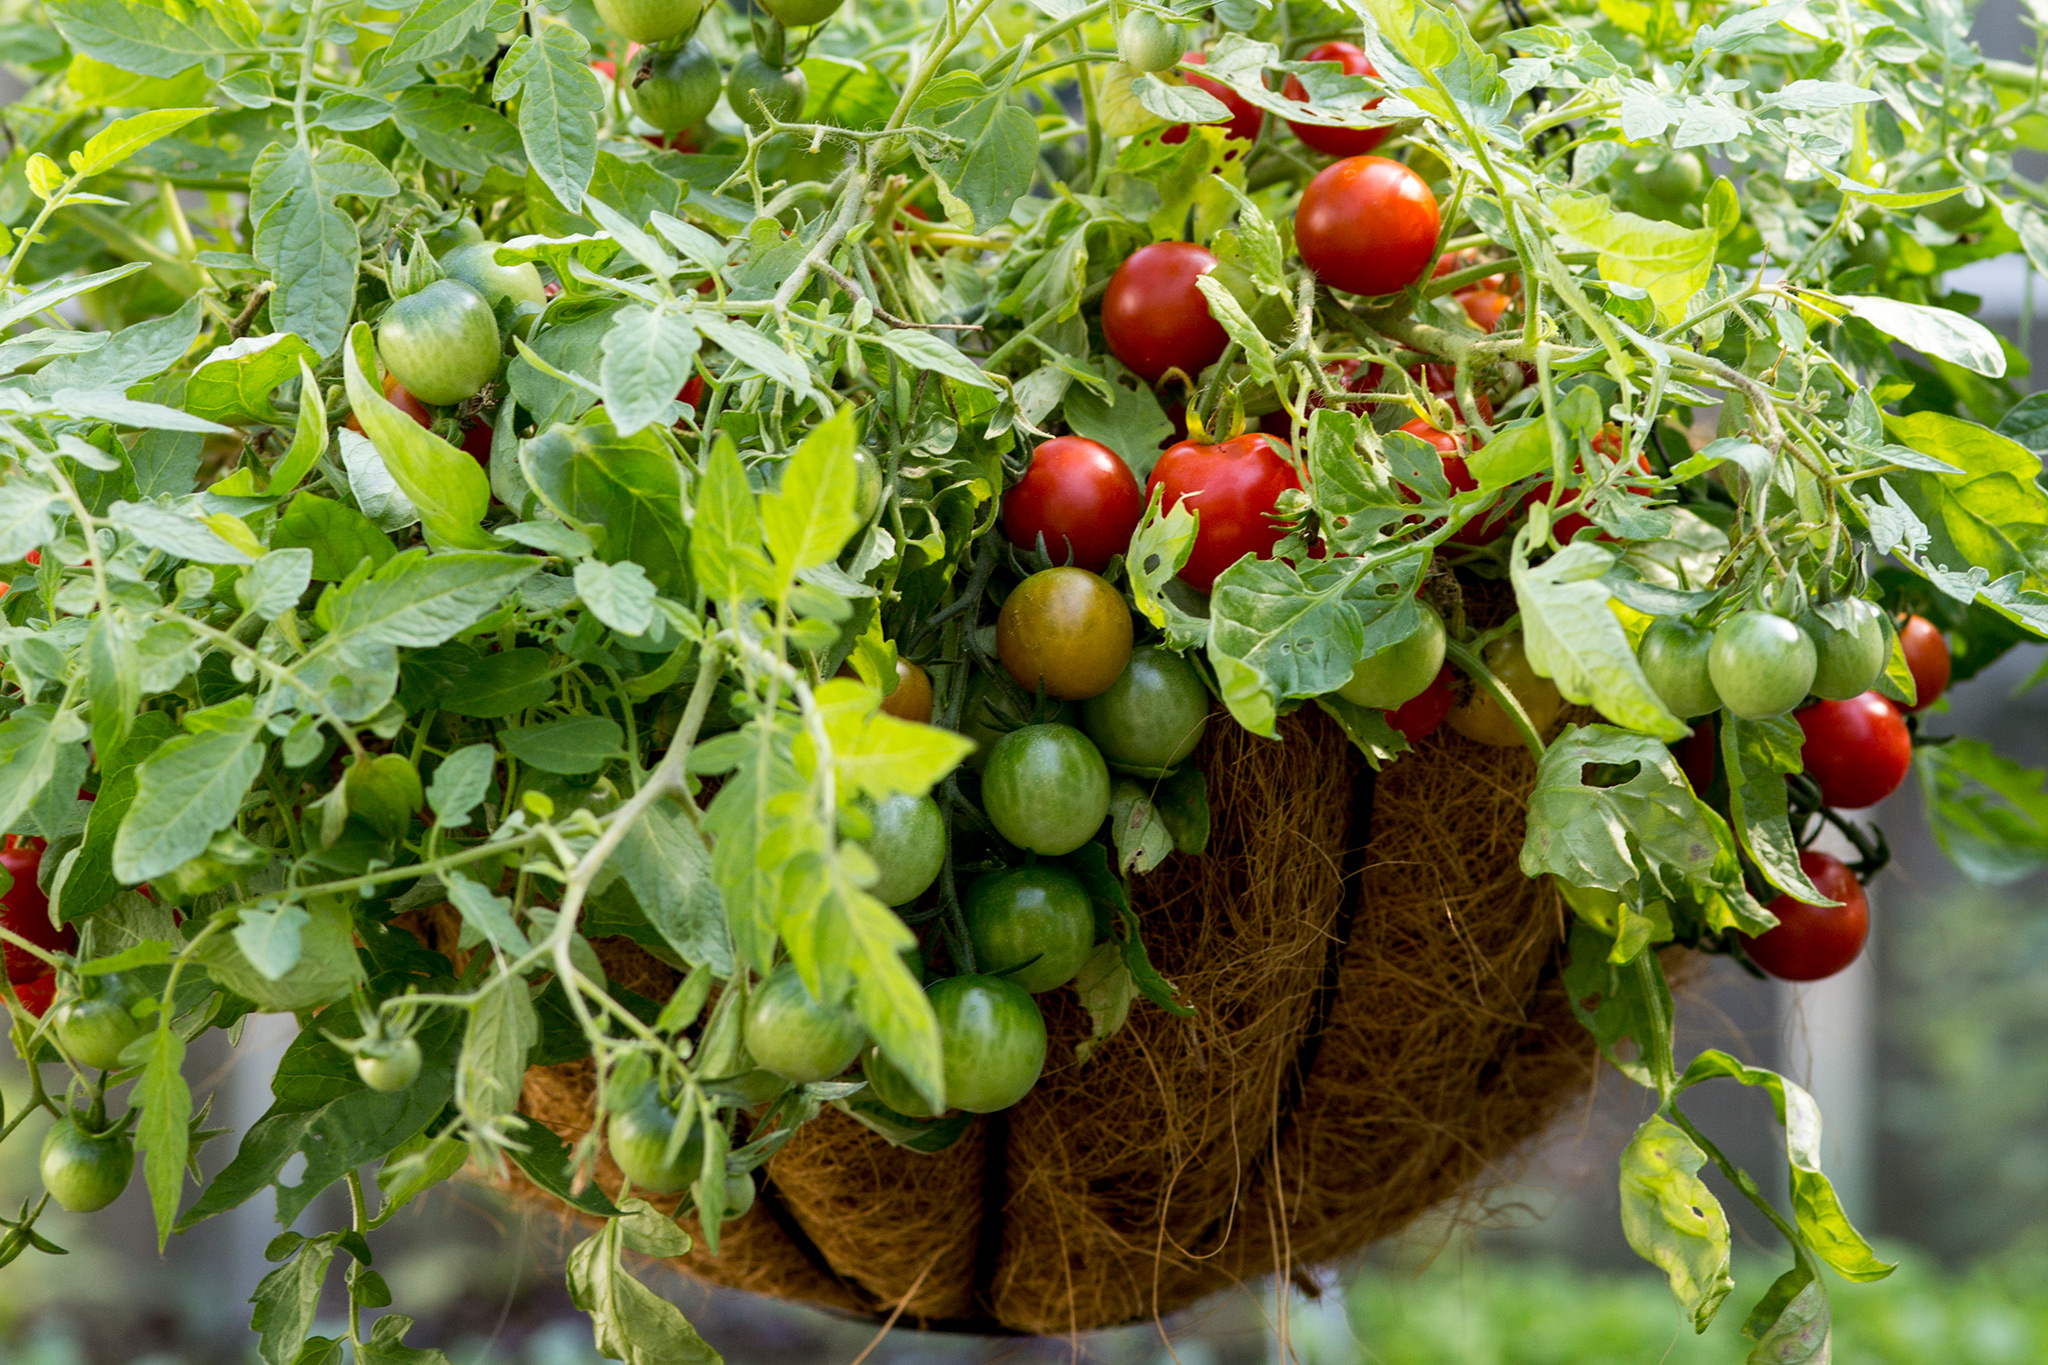 tomatoes-in-a-hanging-basket-3